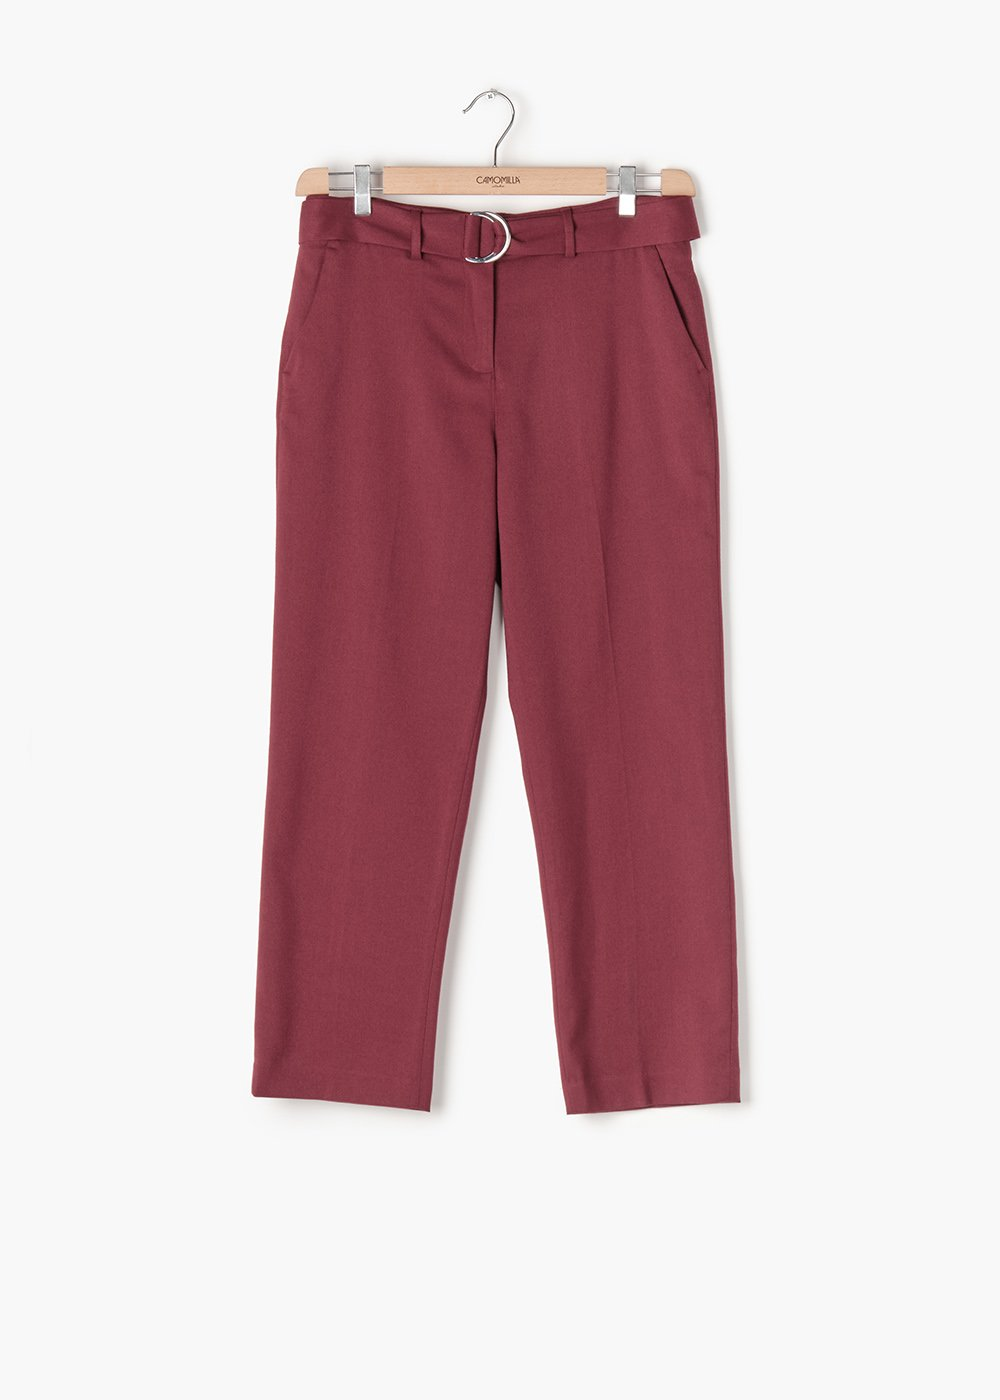 Poly viscose slim-fitting trousers  Portos and belt with double buckle - Black cherry - Woman